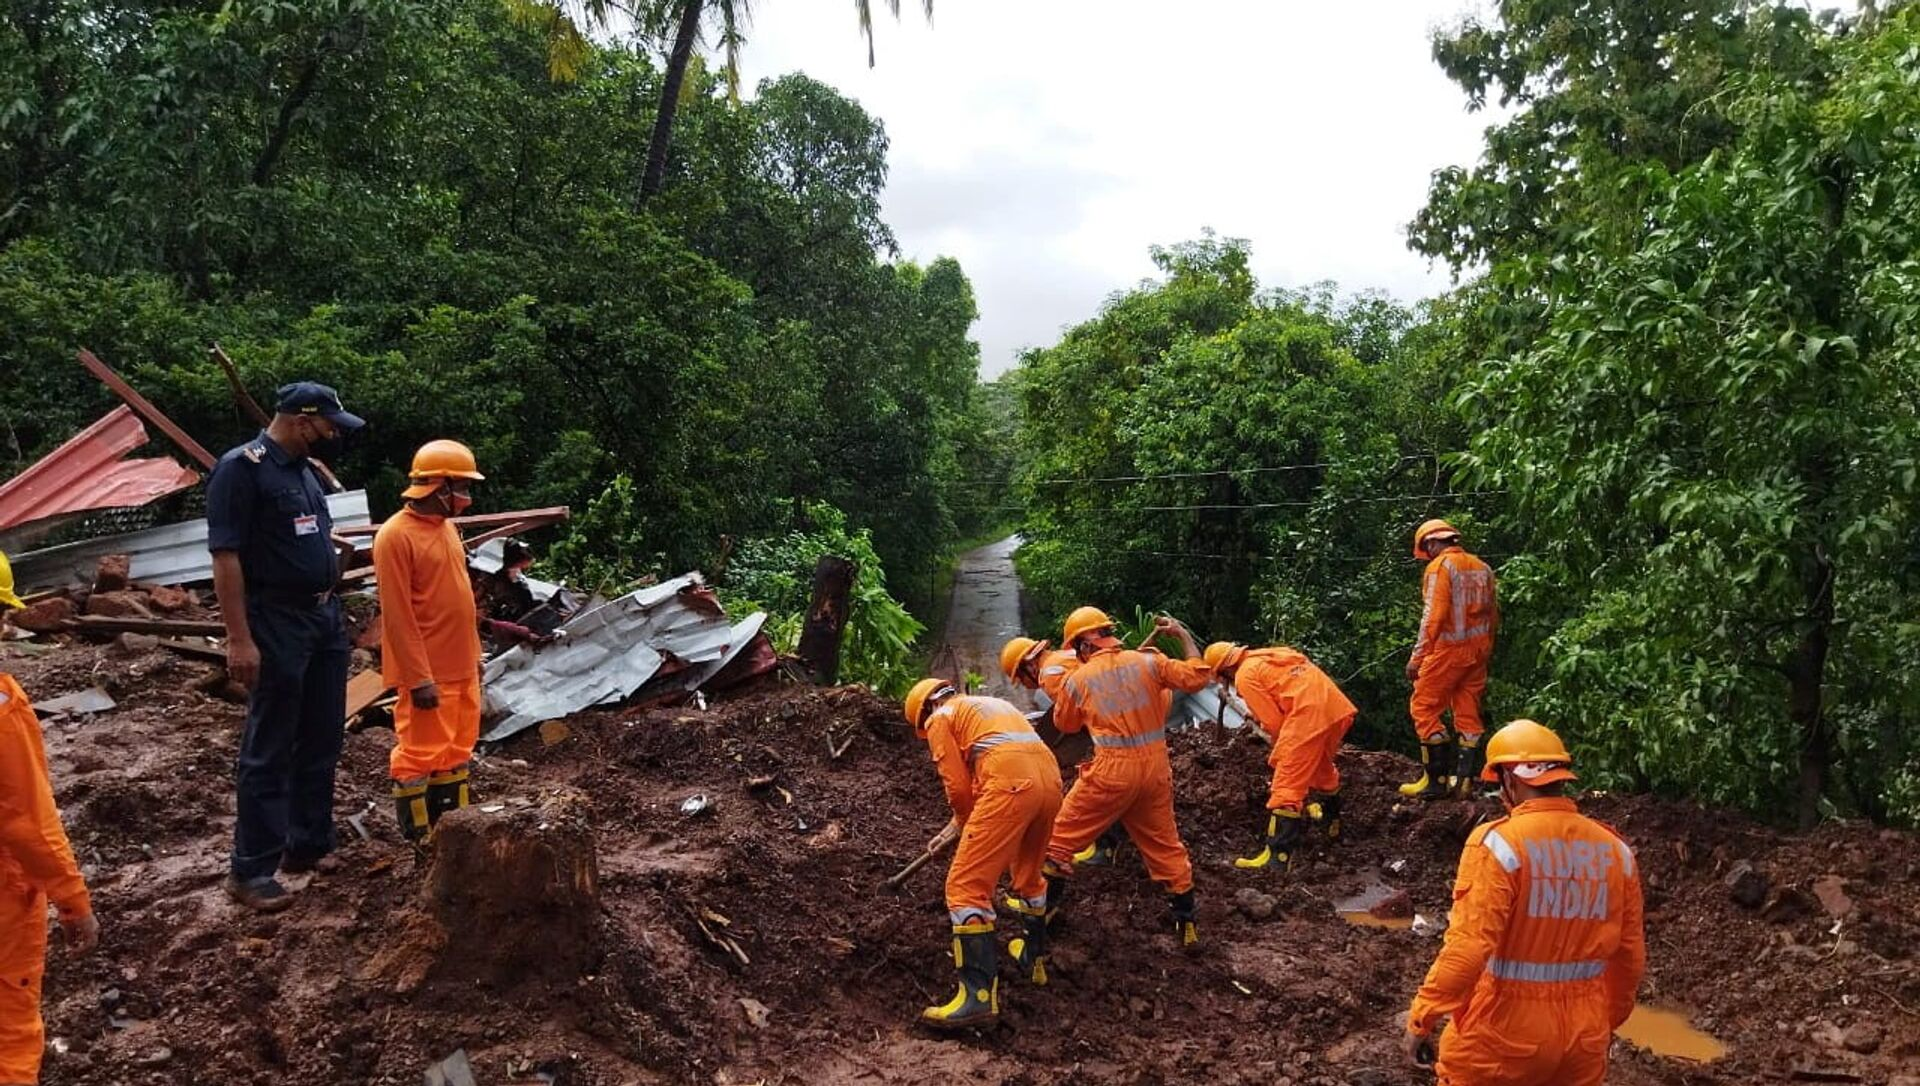 Members of National Disaster Response Force (NDRF) conduct a search and rescue operation after a landslide following heavy rains in Ratnagiri district, Maharashtra state, India, July 25, 2021.  - Sputnik International, 1920, 28.07.2021